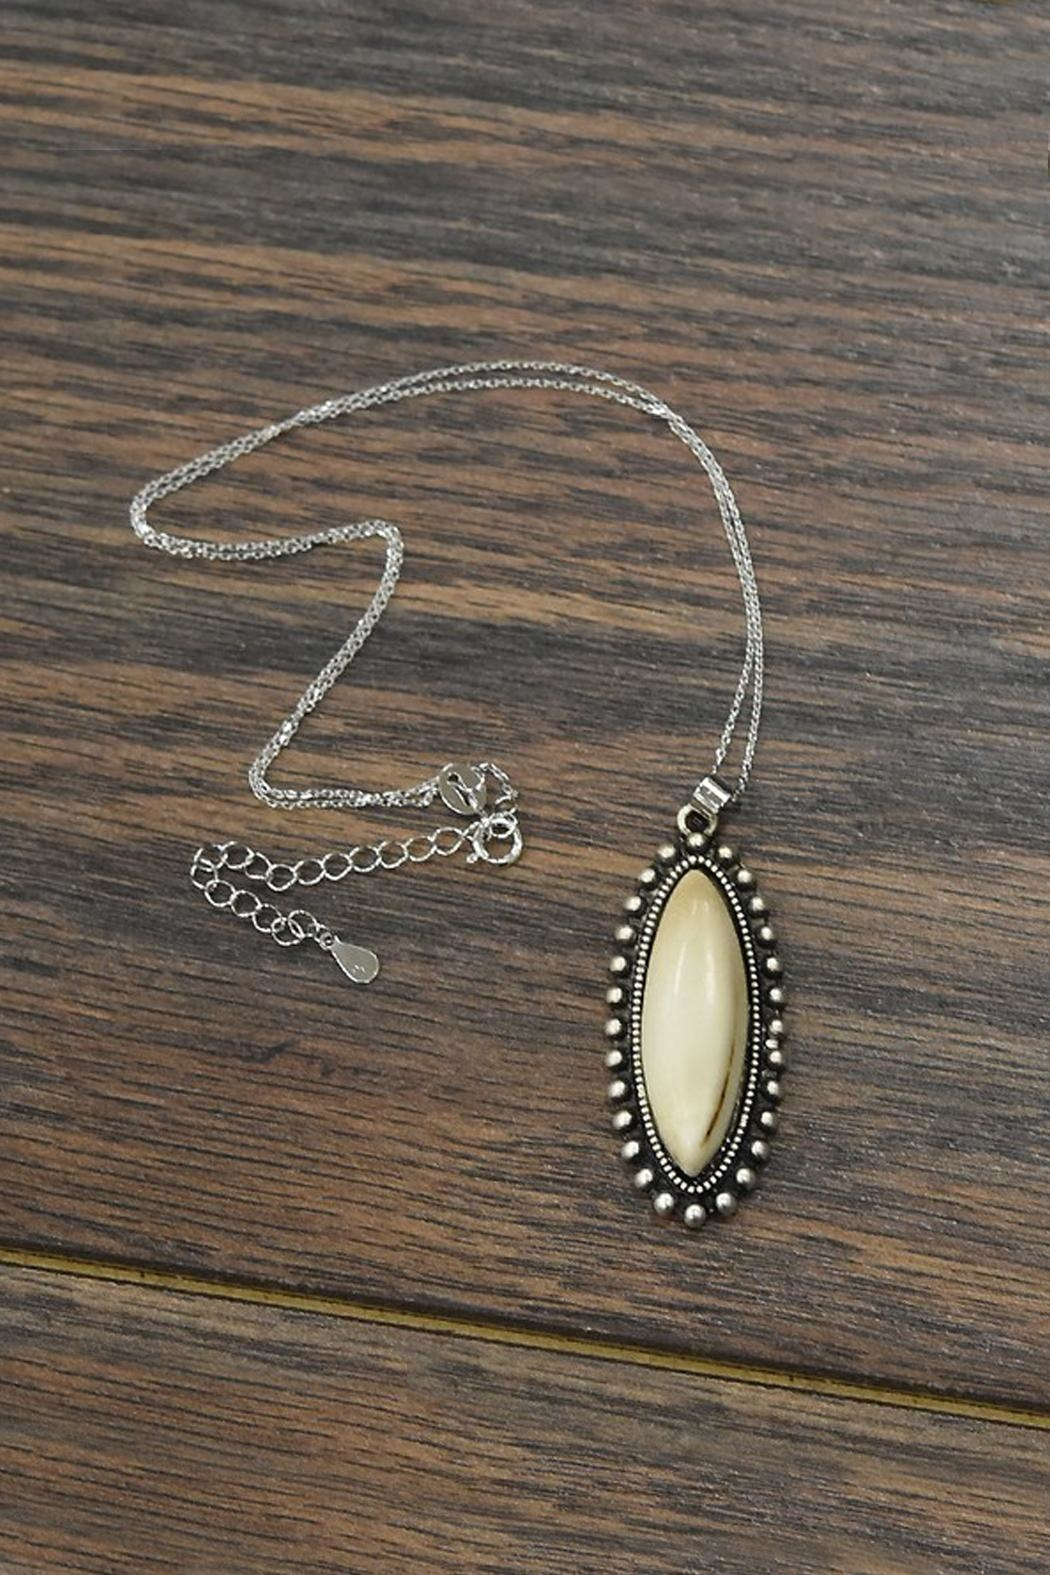 JChronicles Sterling-Silver-Chain-Necklace With Natural-White-Turquoise-Pendant - Main Image